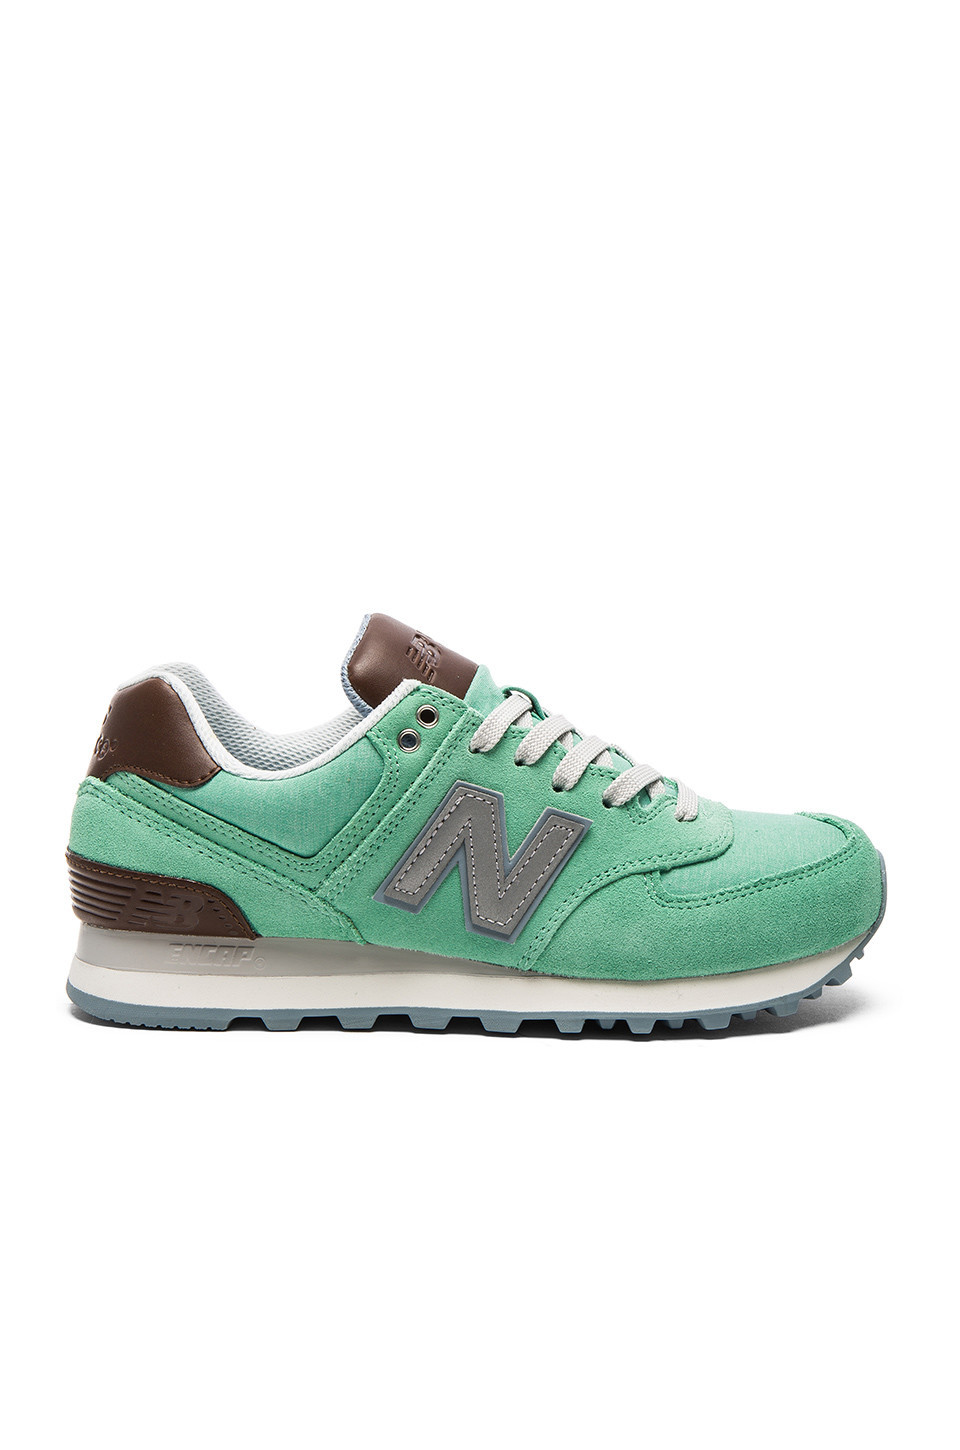 premium selection ff81f 1fd82 New Balance 574 Cruisin  Sneaker in mint